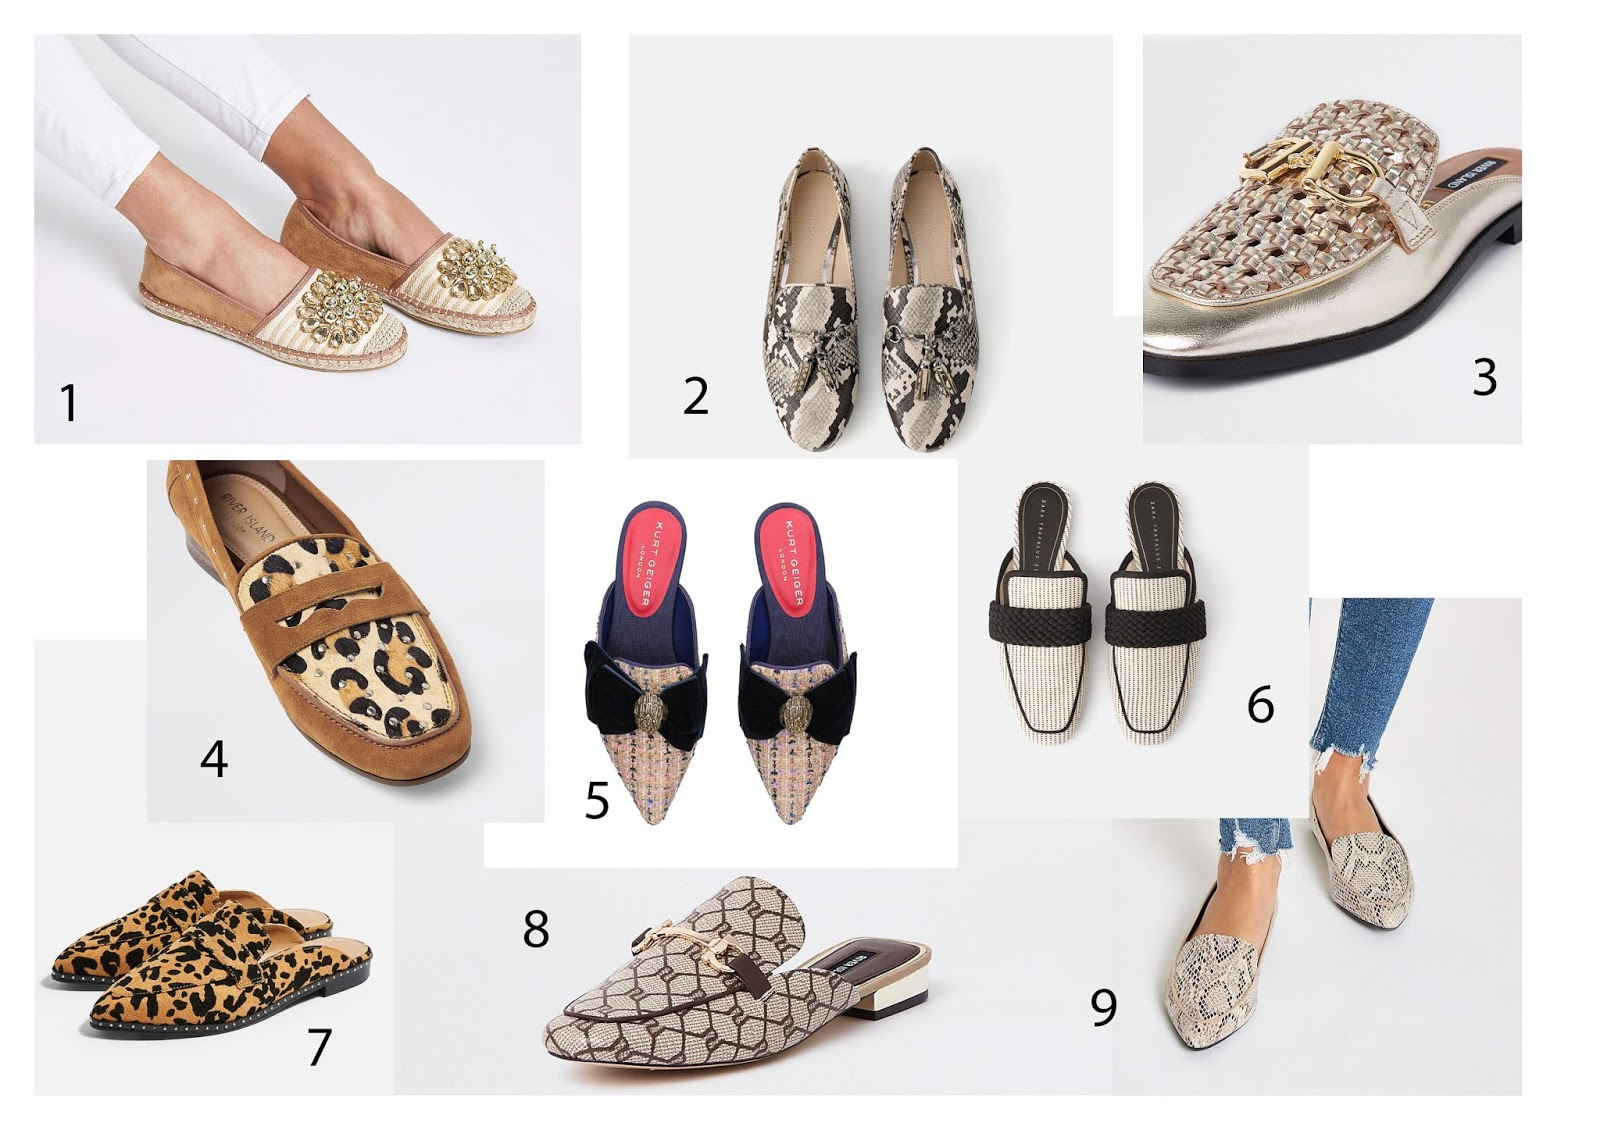 10 Pairs Of Flat Shoes To Get You Excited About Spring